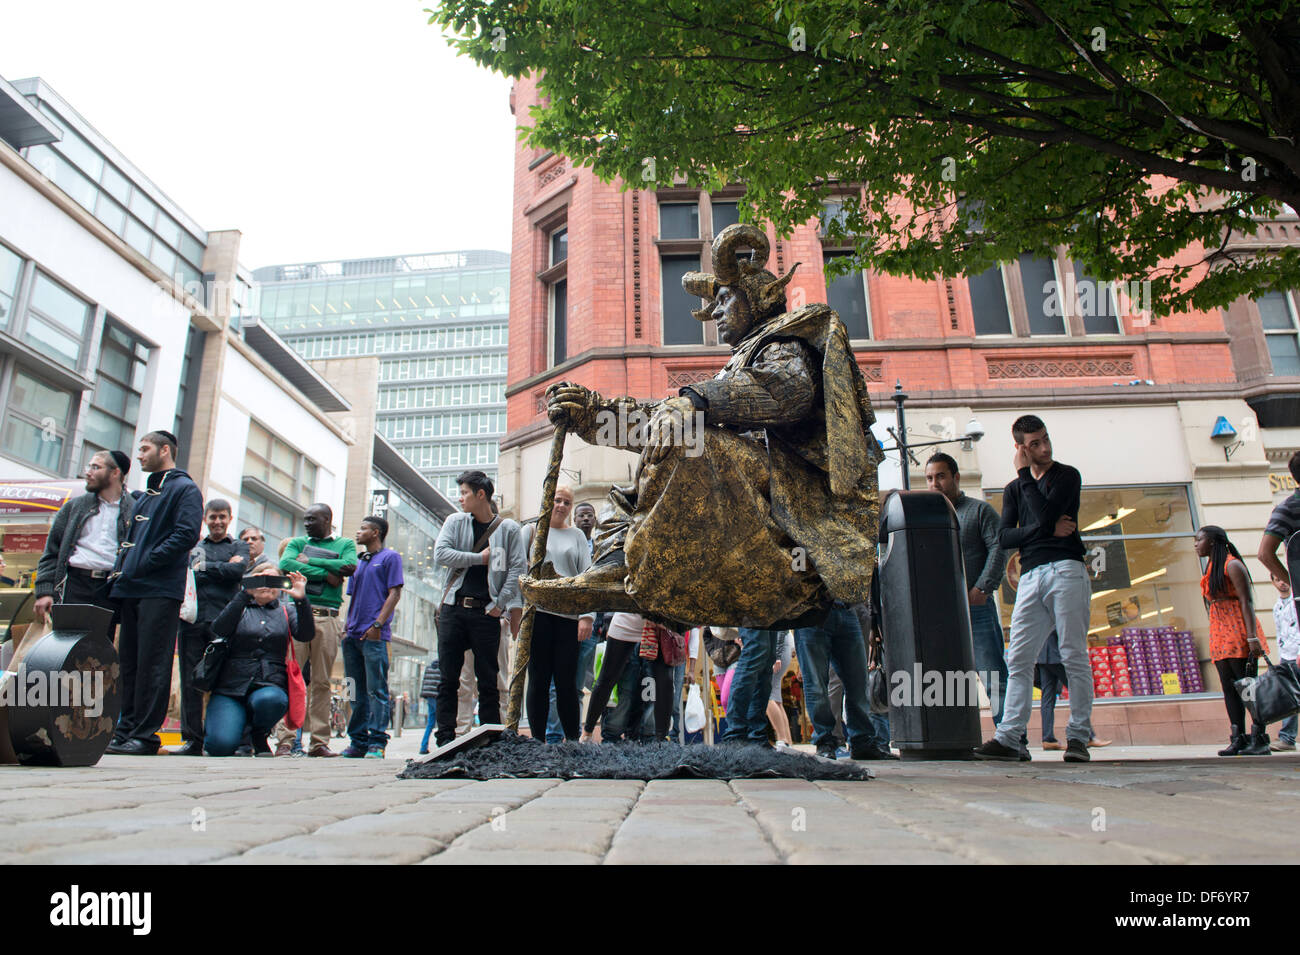 A levitating street artist performs on Market Street in Manchester city centre, watched by passers by. Stock Photo